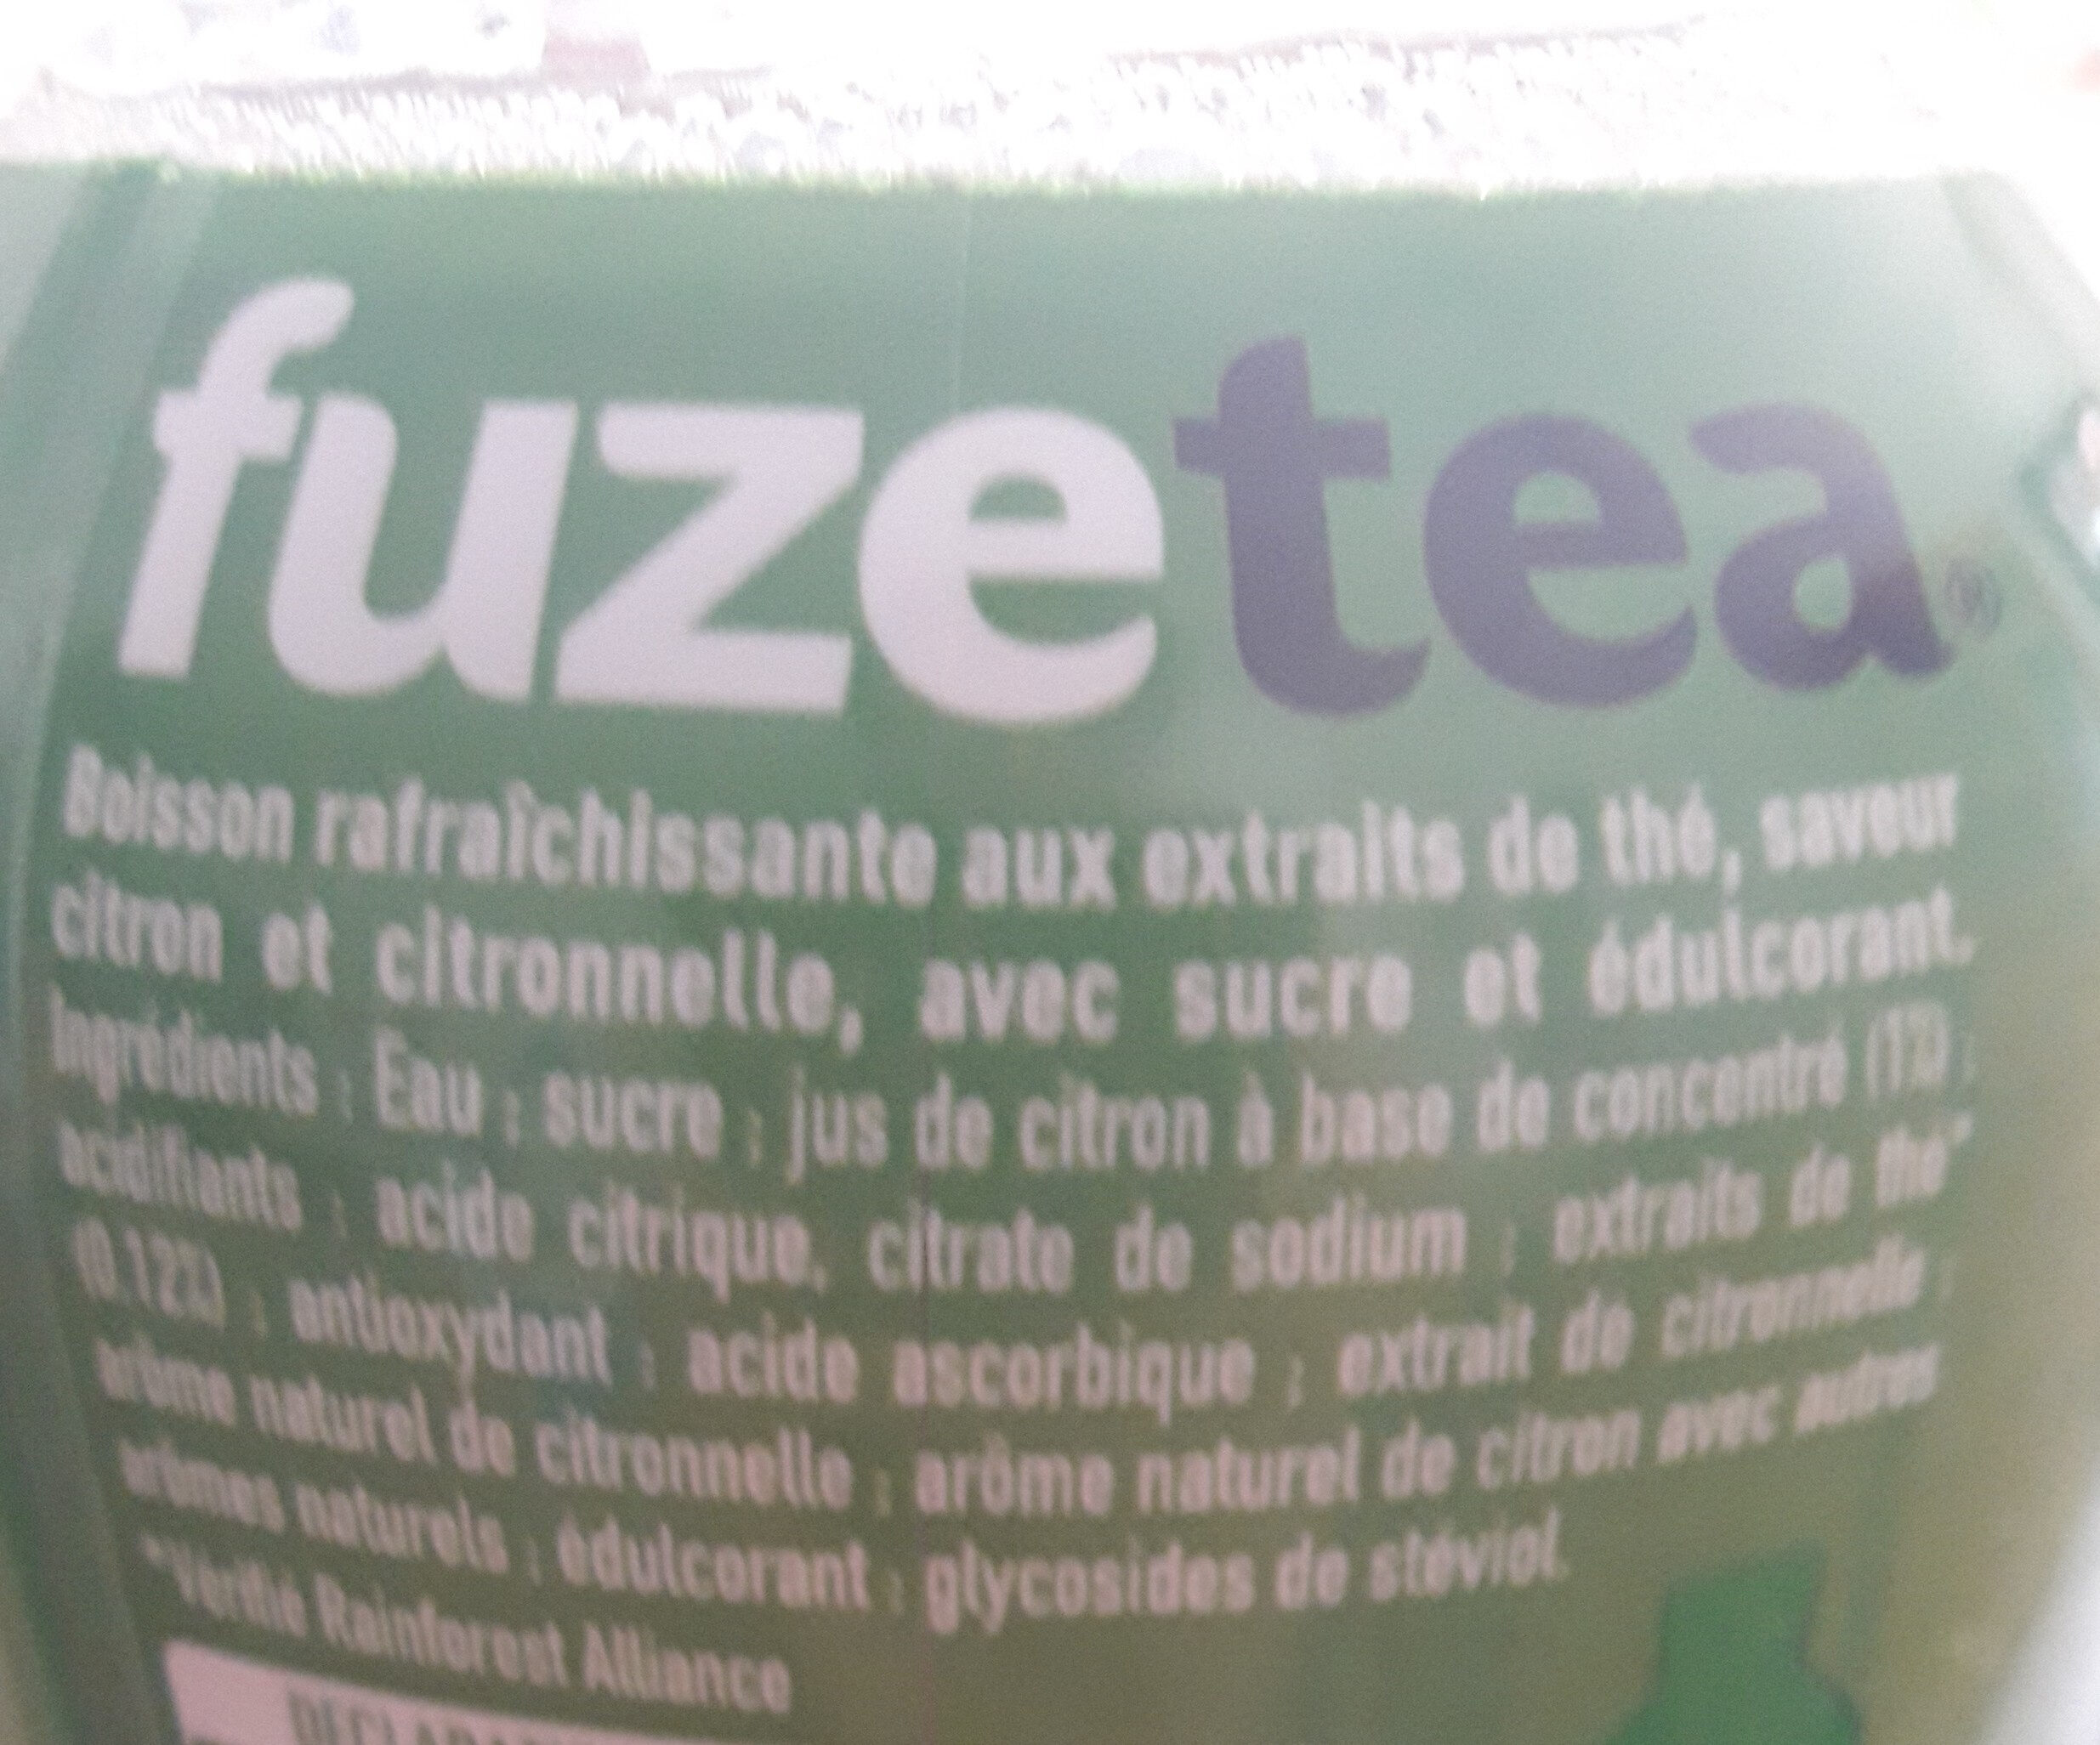 FUZE TEA citron - Ingredients